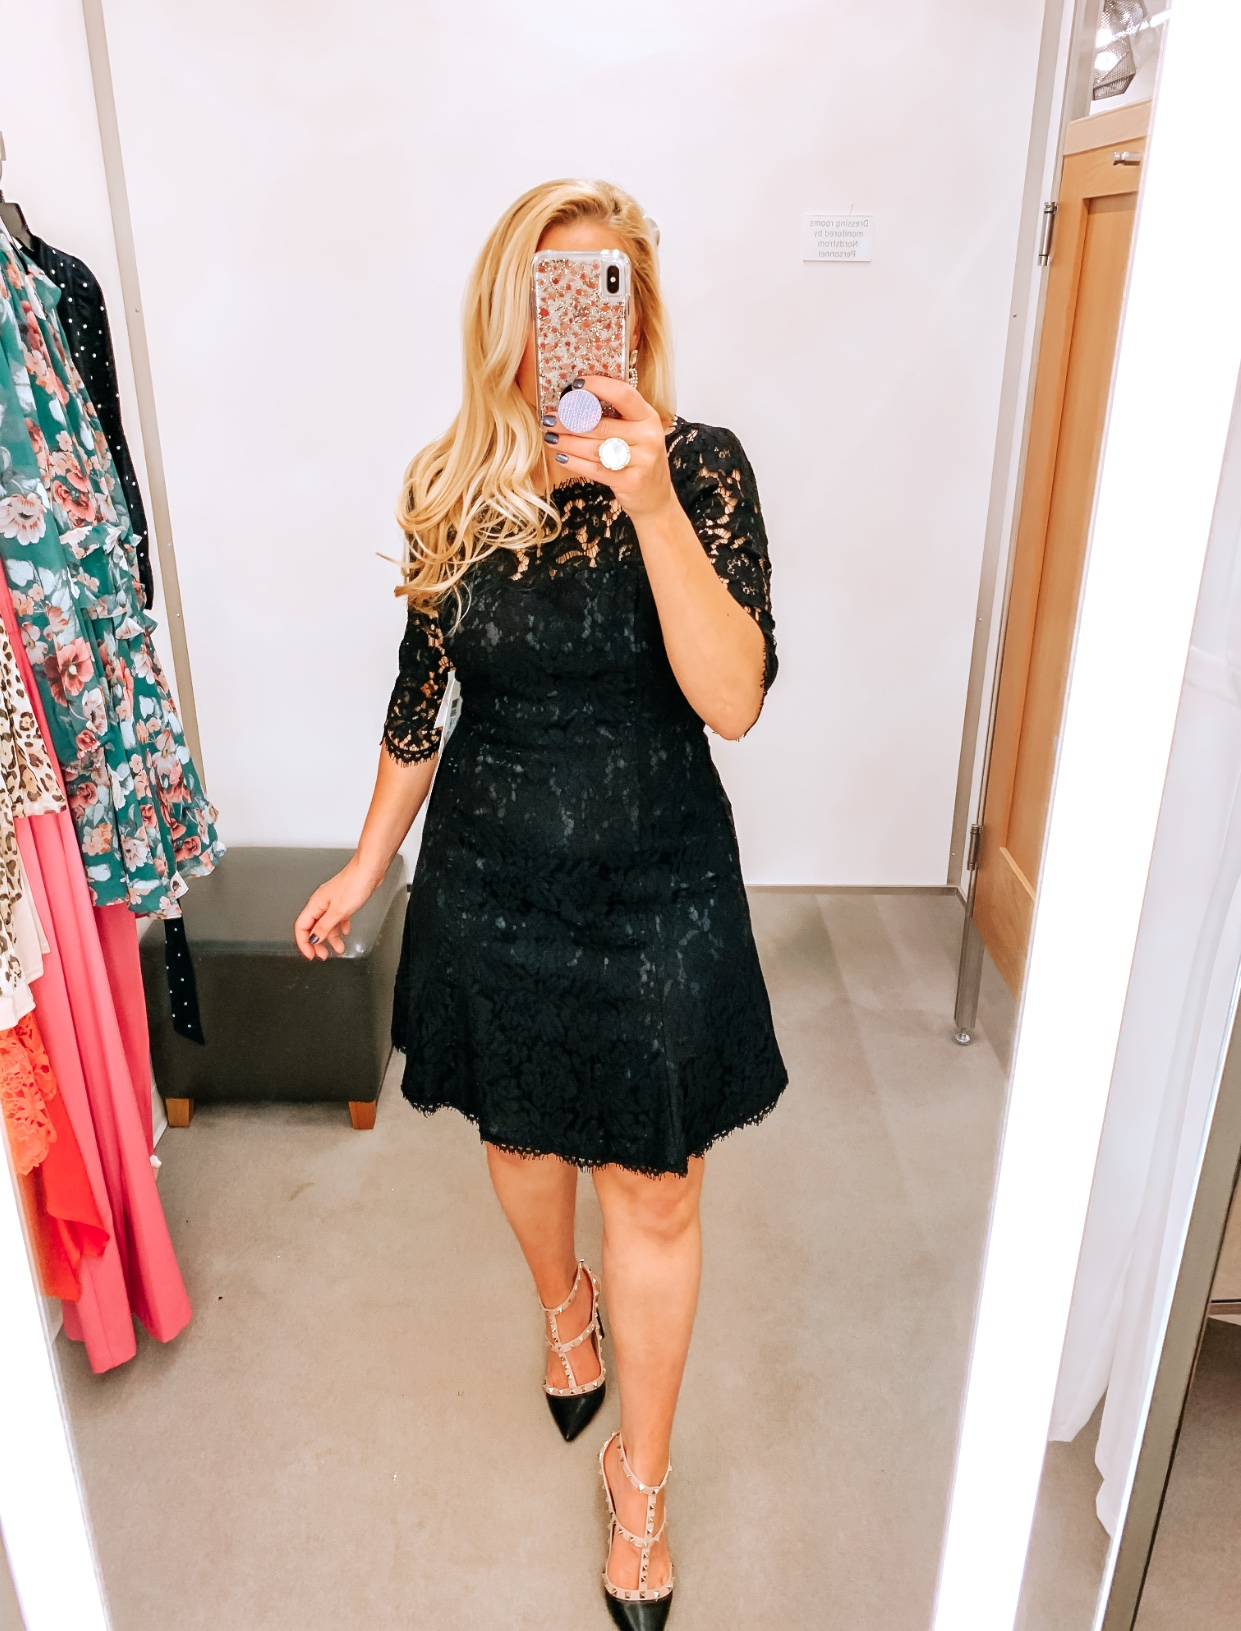 Tampa Blogger Jenn Truman providing a mirror selfie inside Nordstrom at Tampa International Plaza. She is wearing an Eliza J black Lace Fit and flare cocktail dress from Nordstrom and Valentino dupe black studded heels from Amazon. She is holding her phone for a mirror selfie try on session.